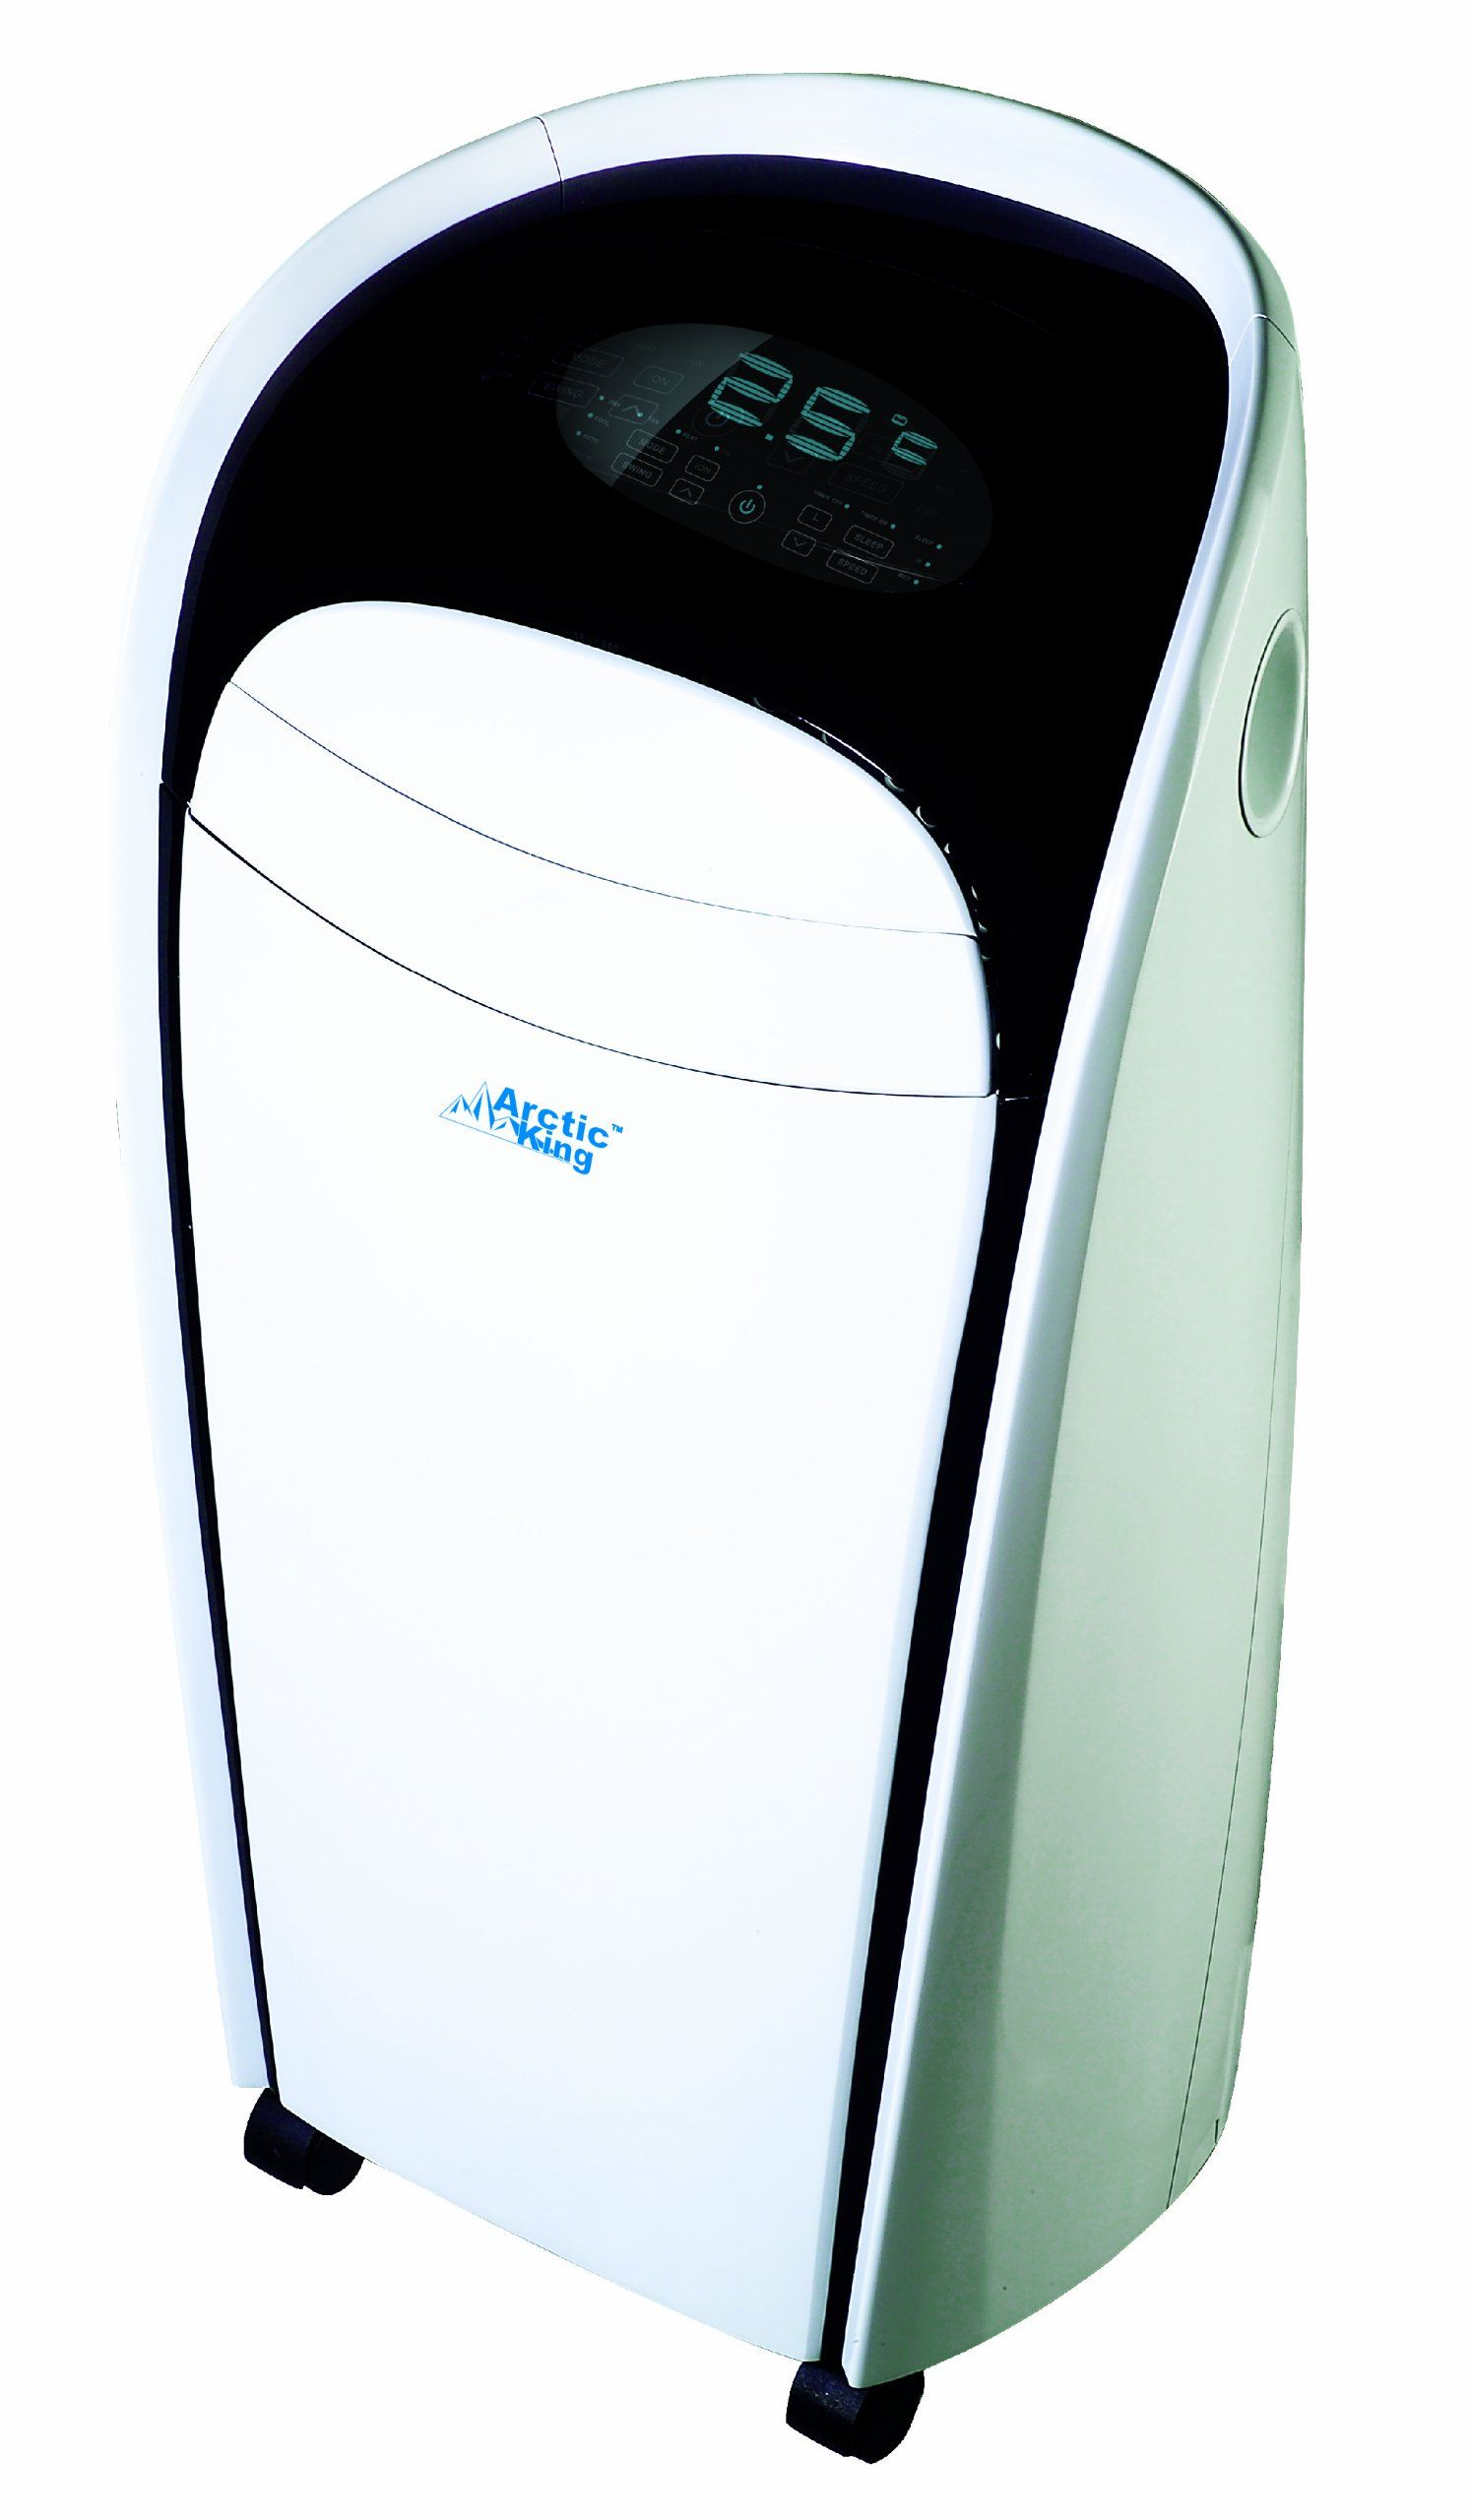 Midea 10k Btu Portable Ac Read More Reviews Of The Product By Visiting The Link On The Image Th Portable Air Conditioner Room Air Conditioner Portable Ac